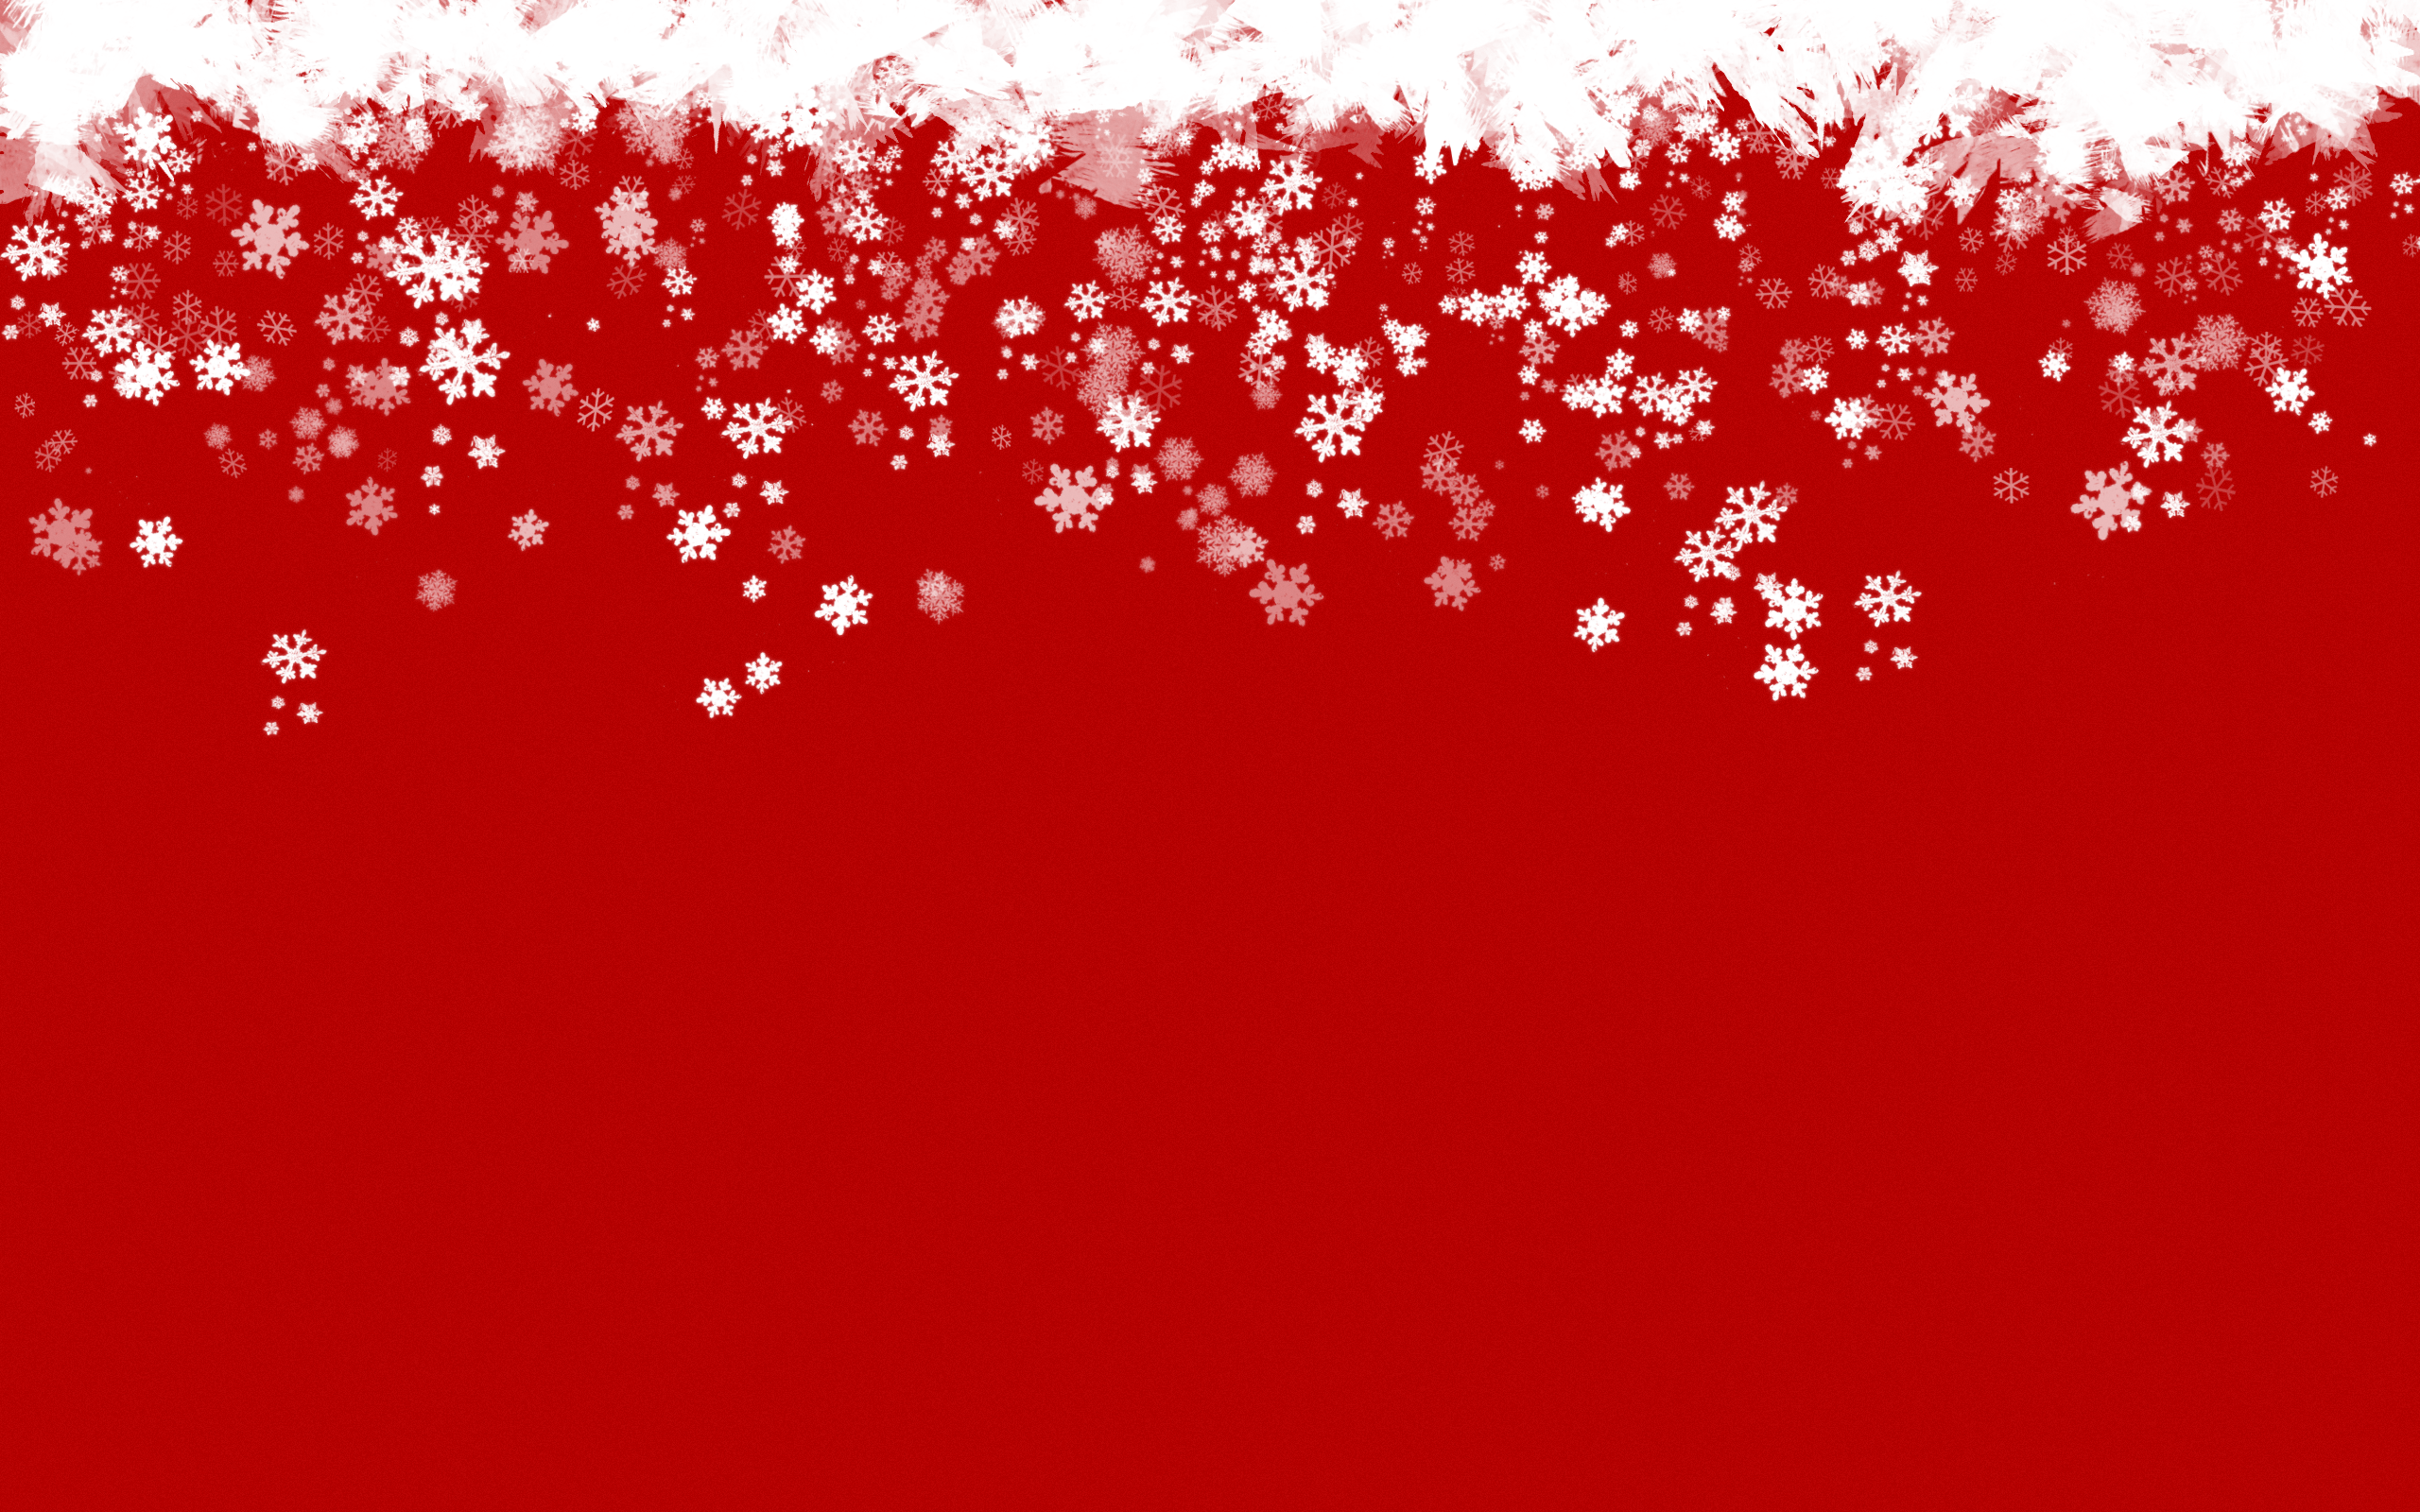 snowflake wallpapers archives